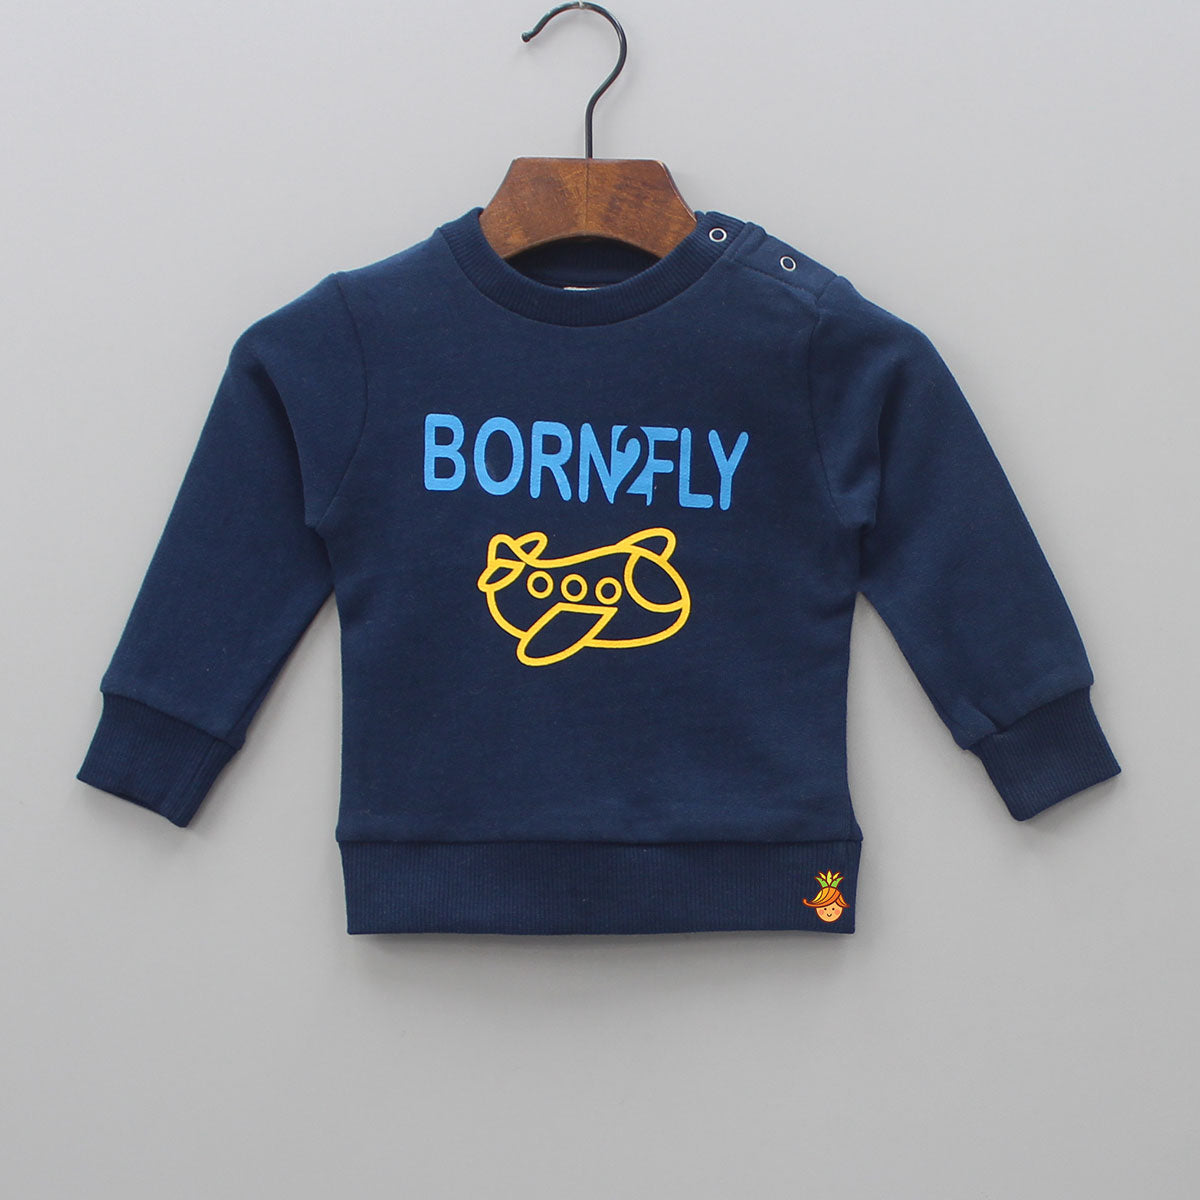 Born To Fly Sweater